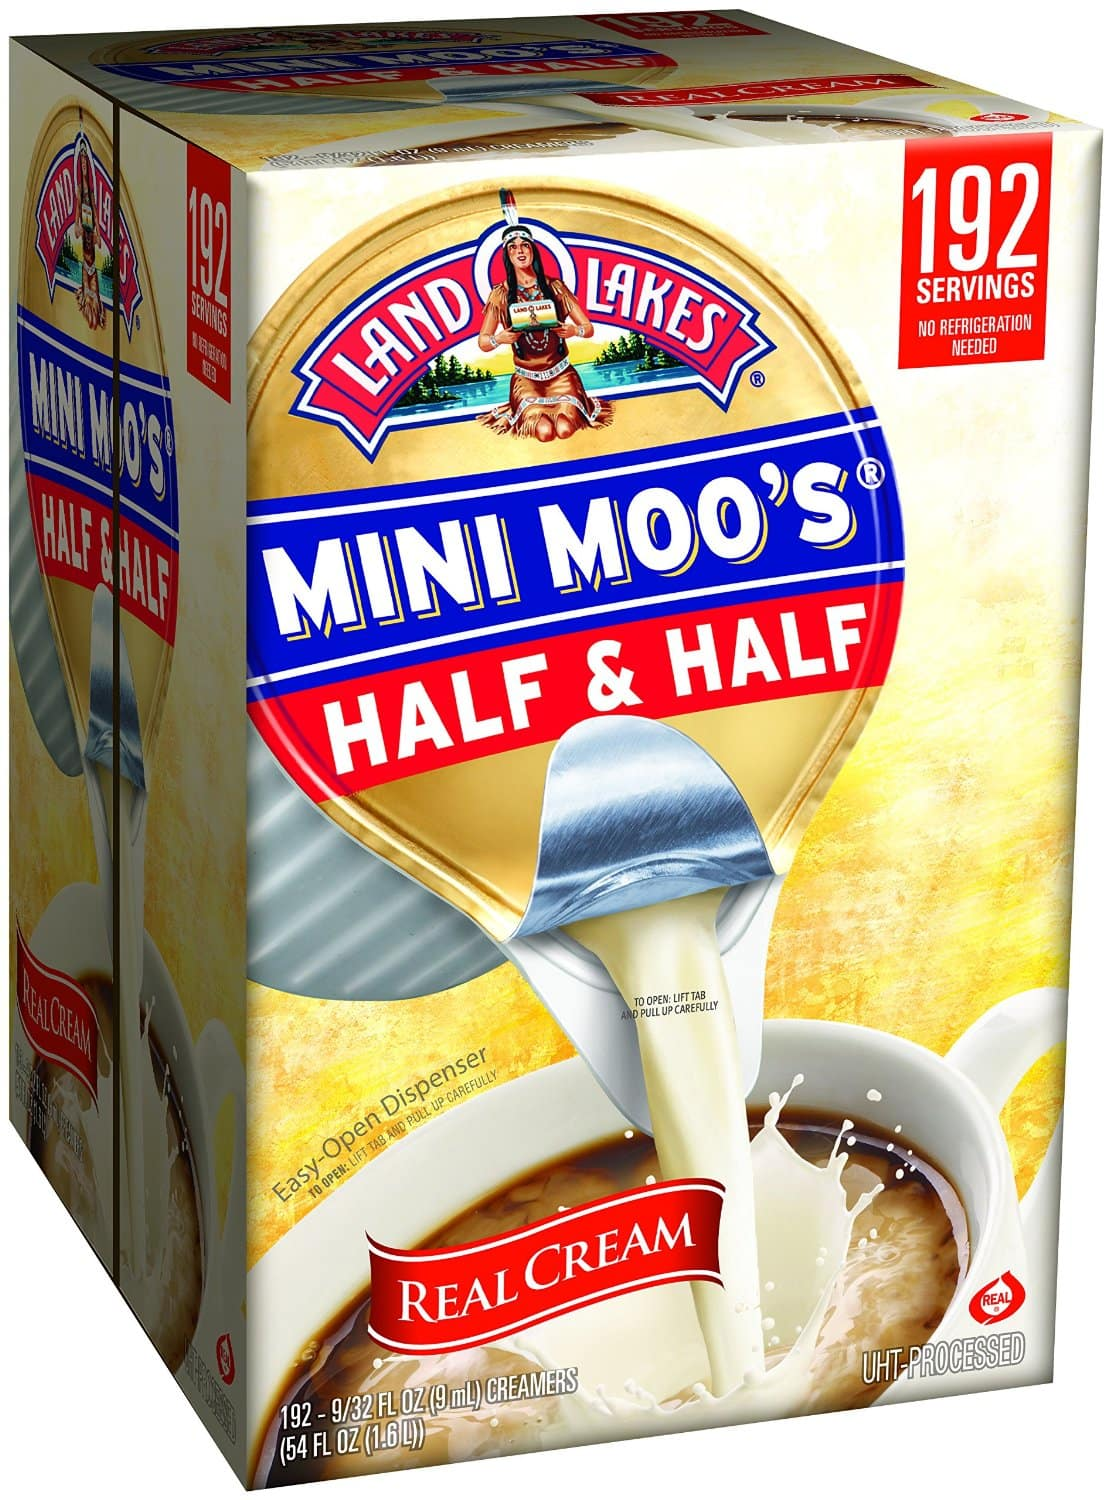 Land Lakes Mini Moos Creamer, Half and Half Cups, 192 Count - $6.99 w/S&S @ Amazon.com